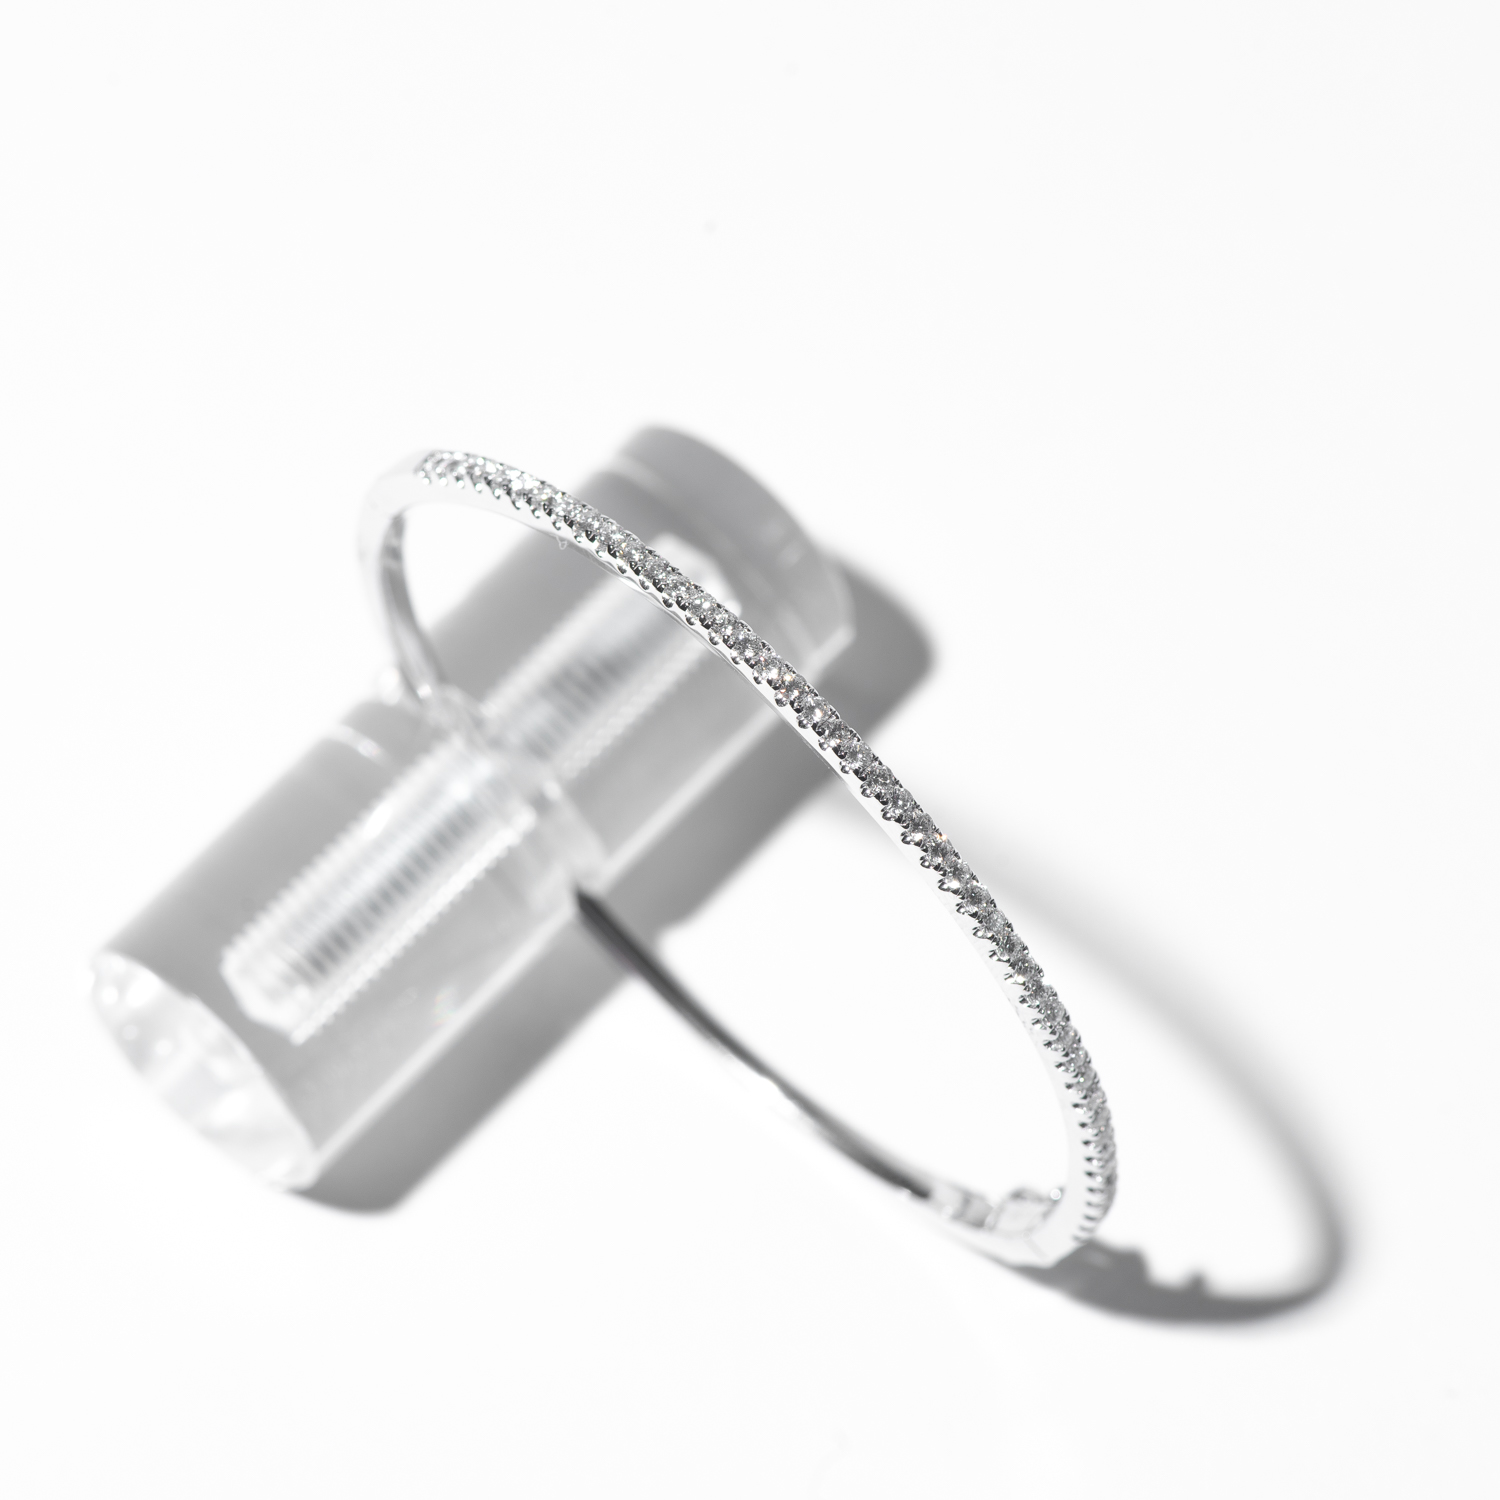 Design Six. - 14K White Gold Single Row Micro Pave Bangle Bracelet